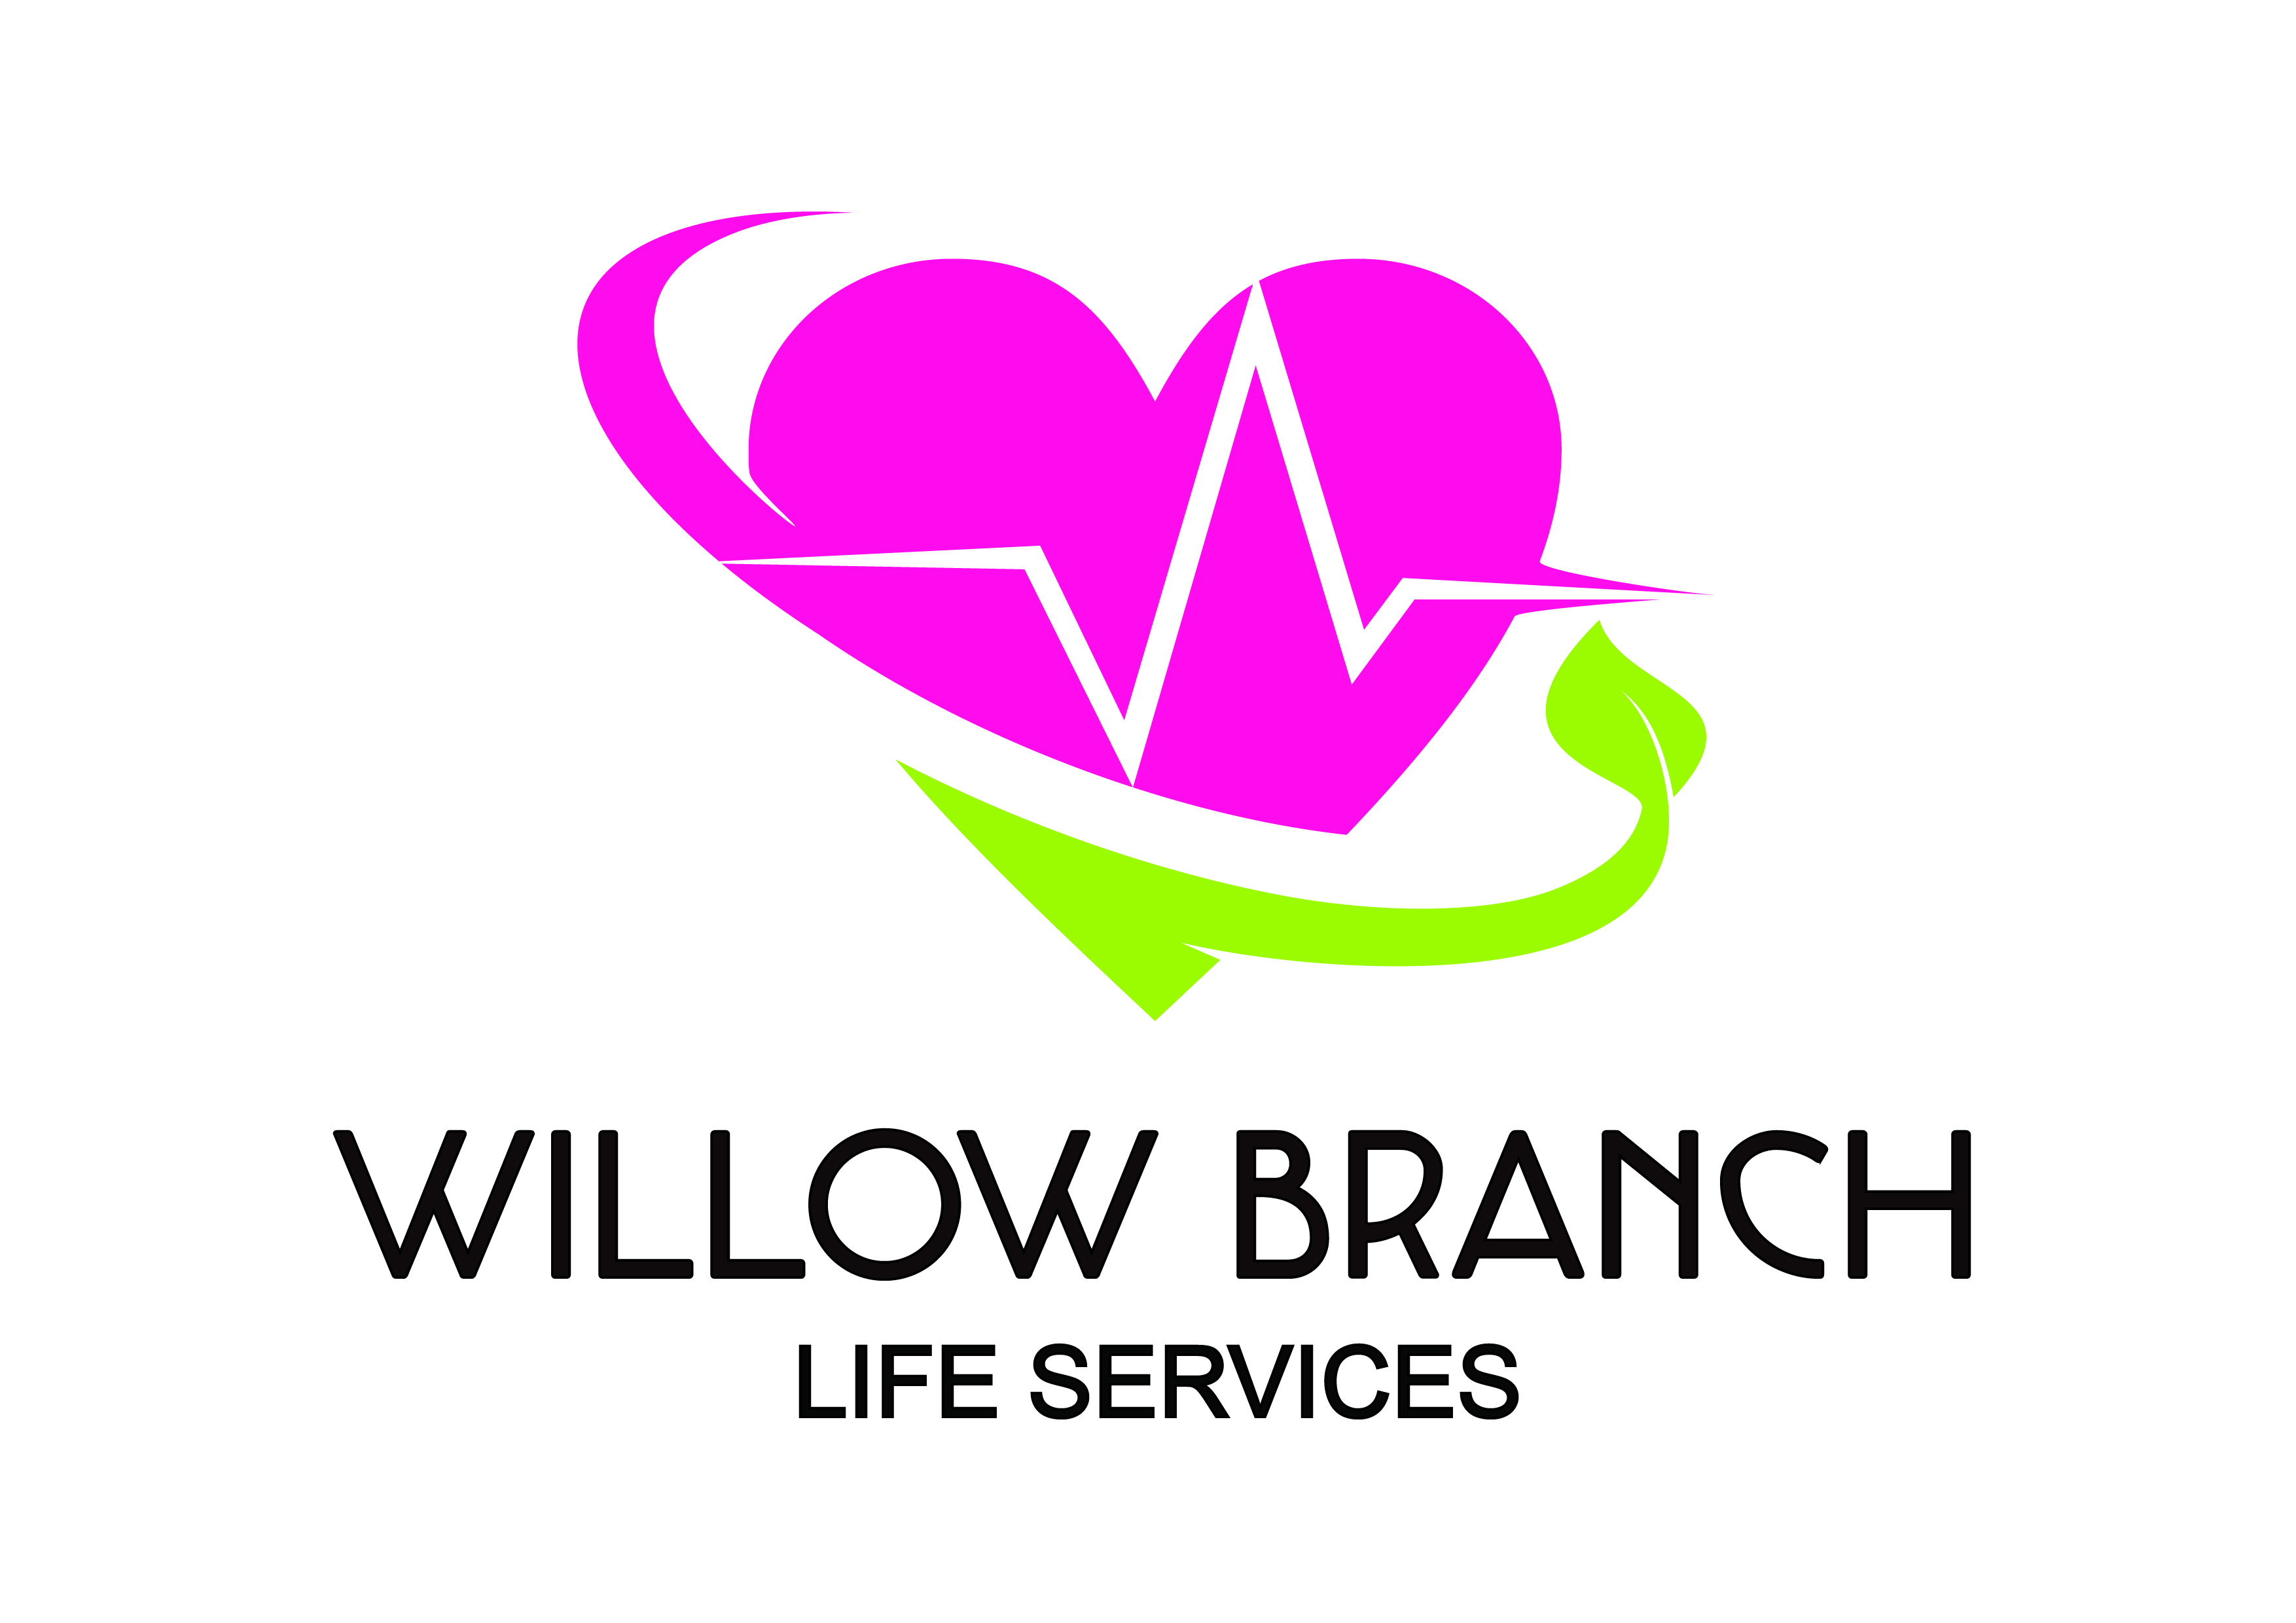 Logo Design by Anum Aamir - Entry No. 162 in the Logo Design Contest Artistic Logo Design for Willow Branch Life Service.